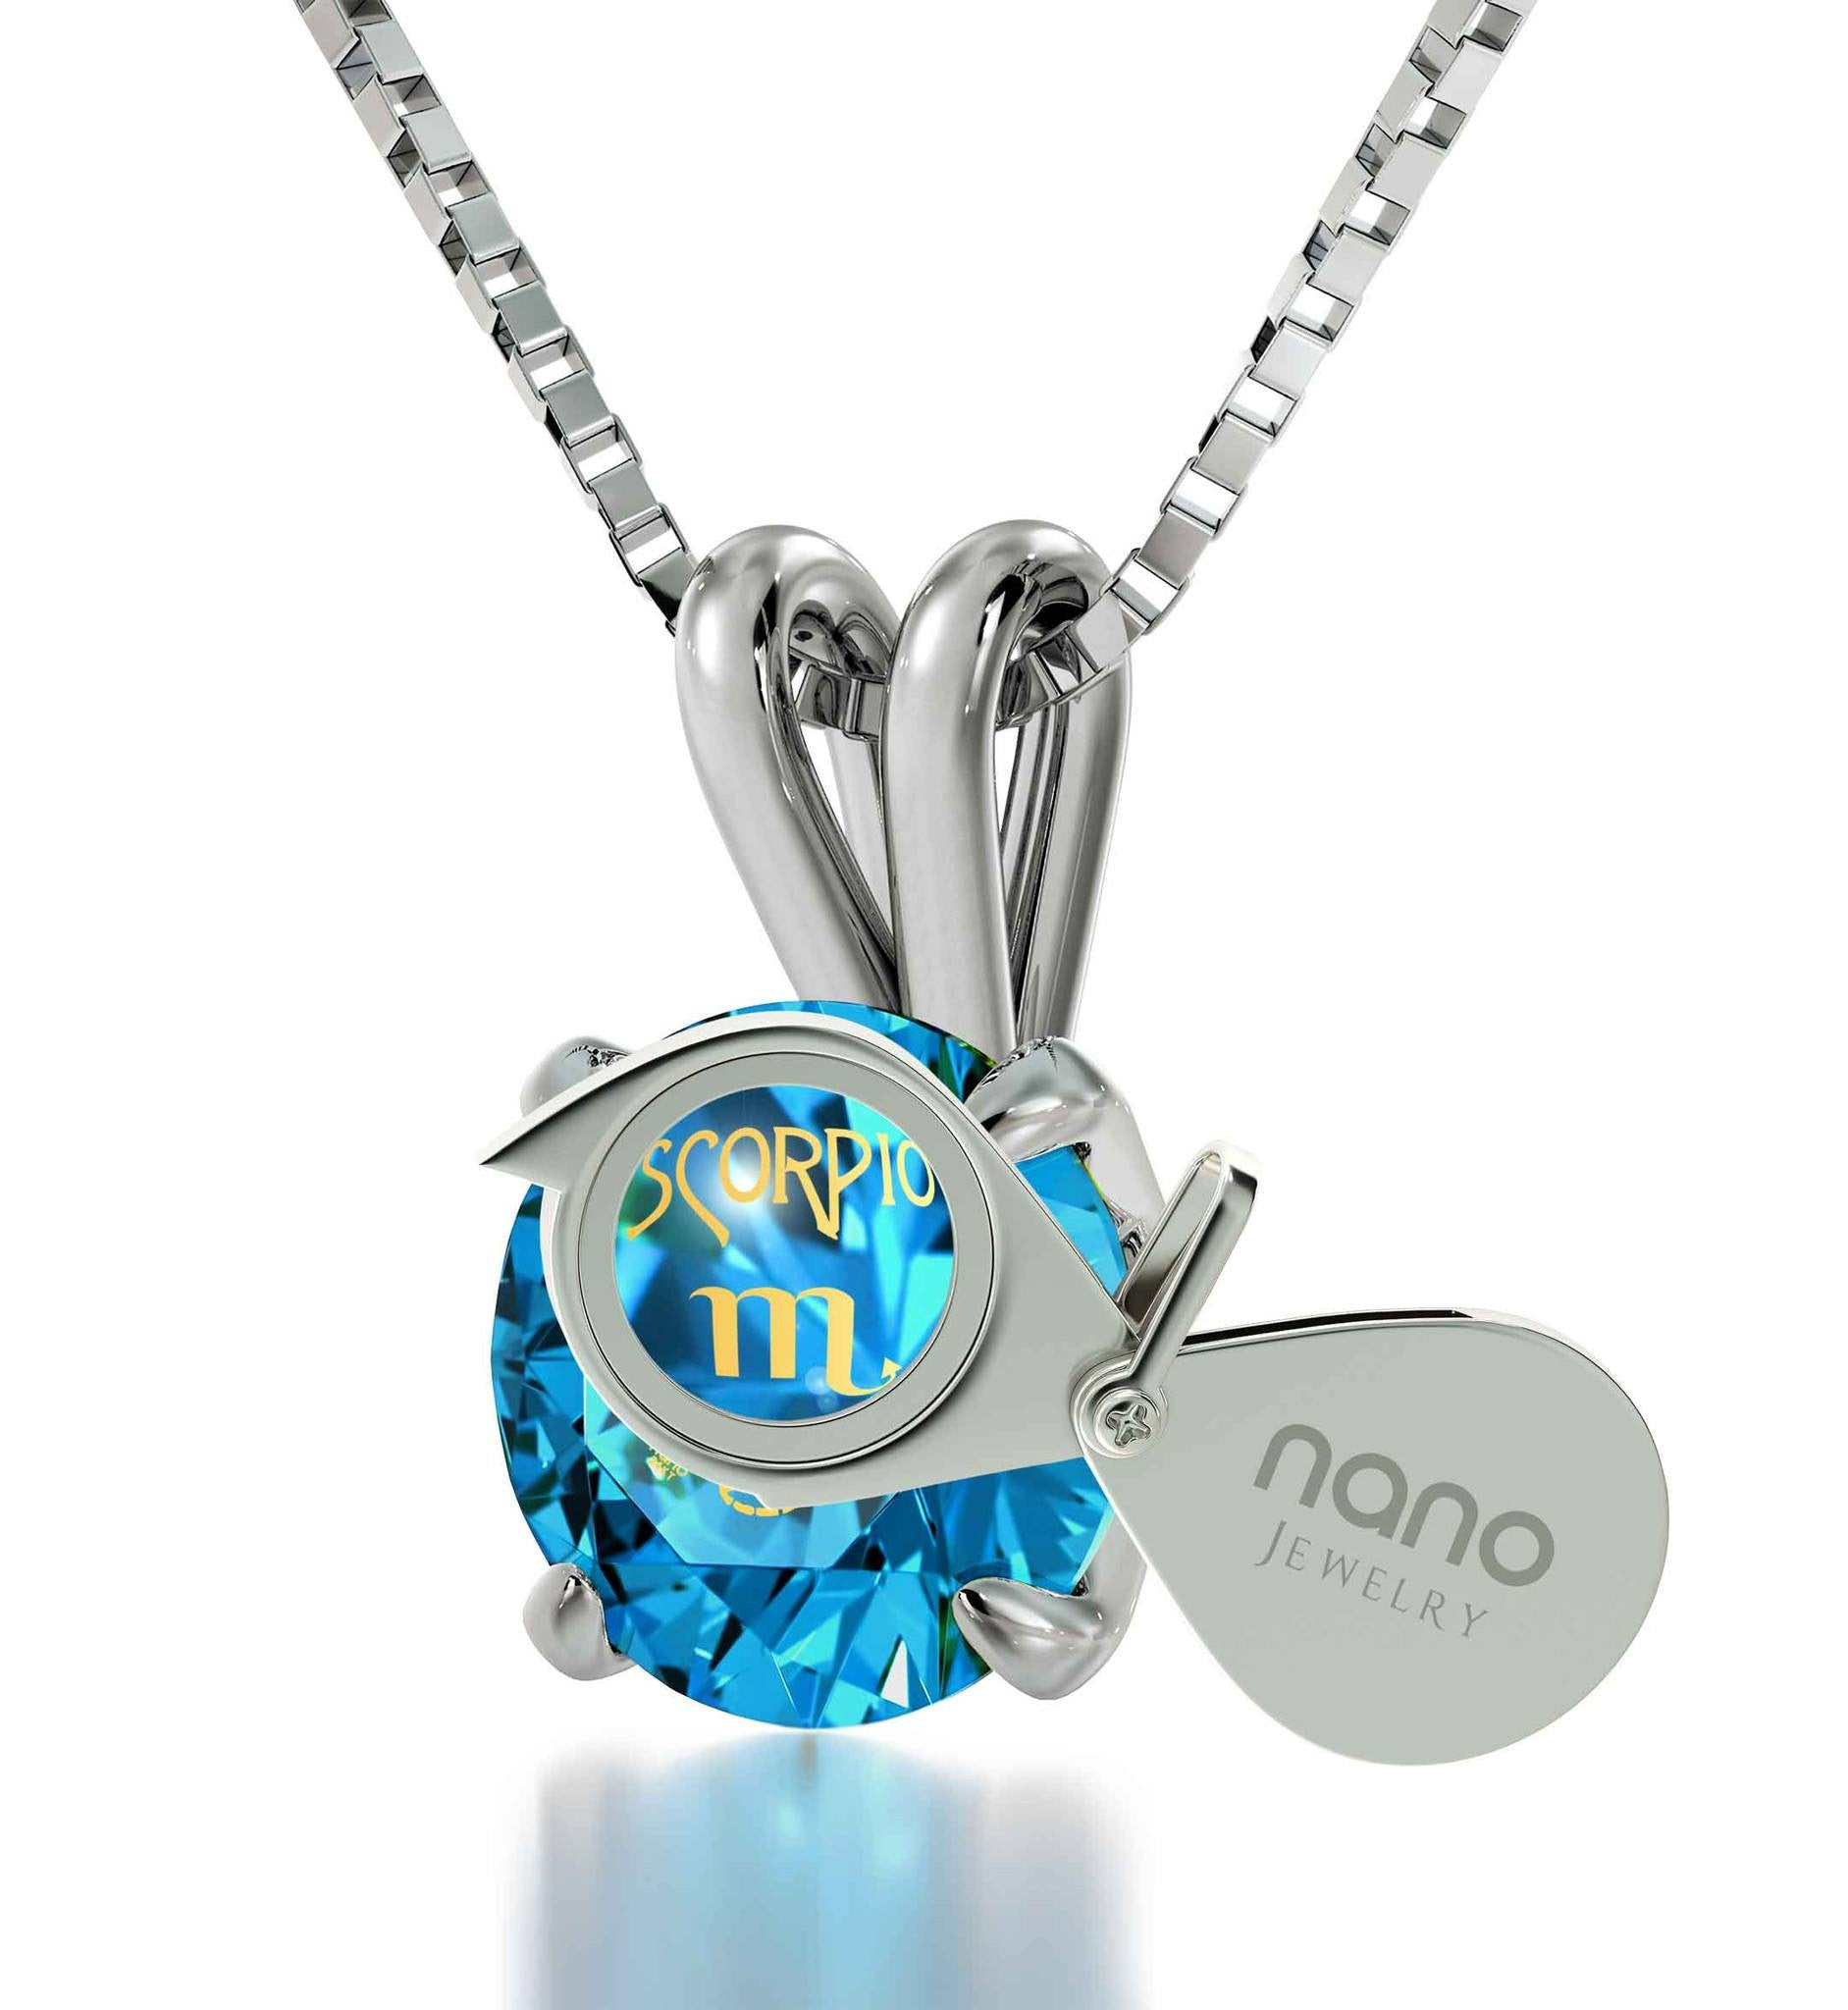 """Xmas Presents for Women, Blue Topaz Pendant With Engraved Scorpio Sign, Women's Gold Jewelry"""